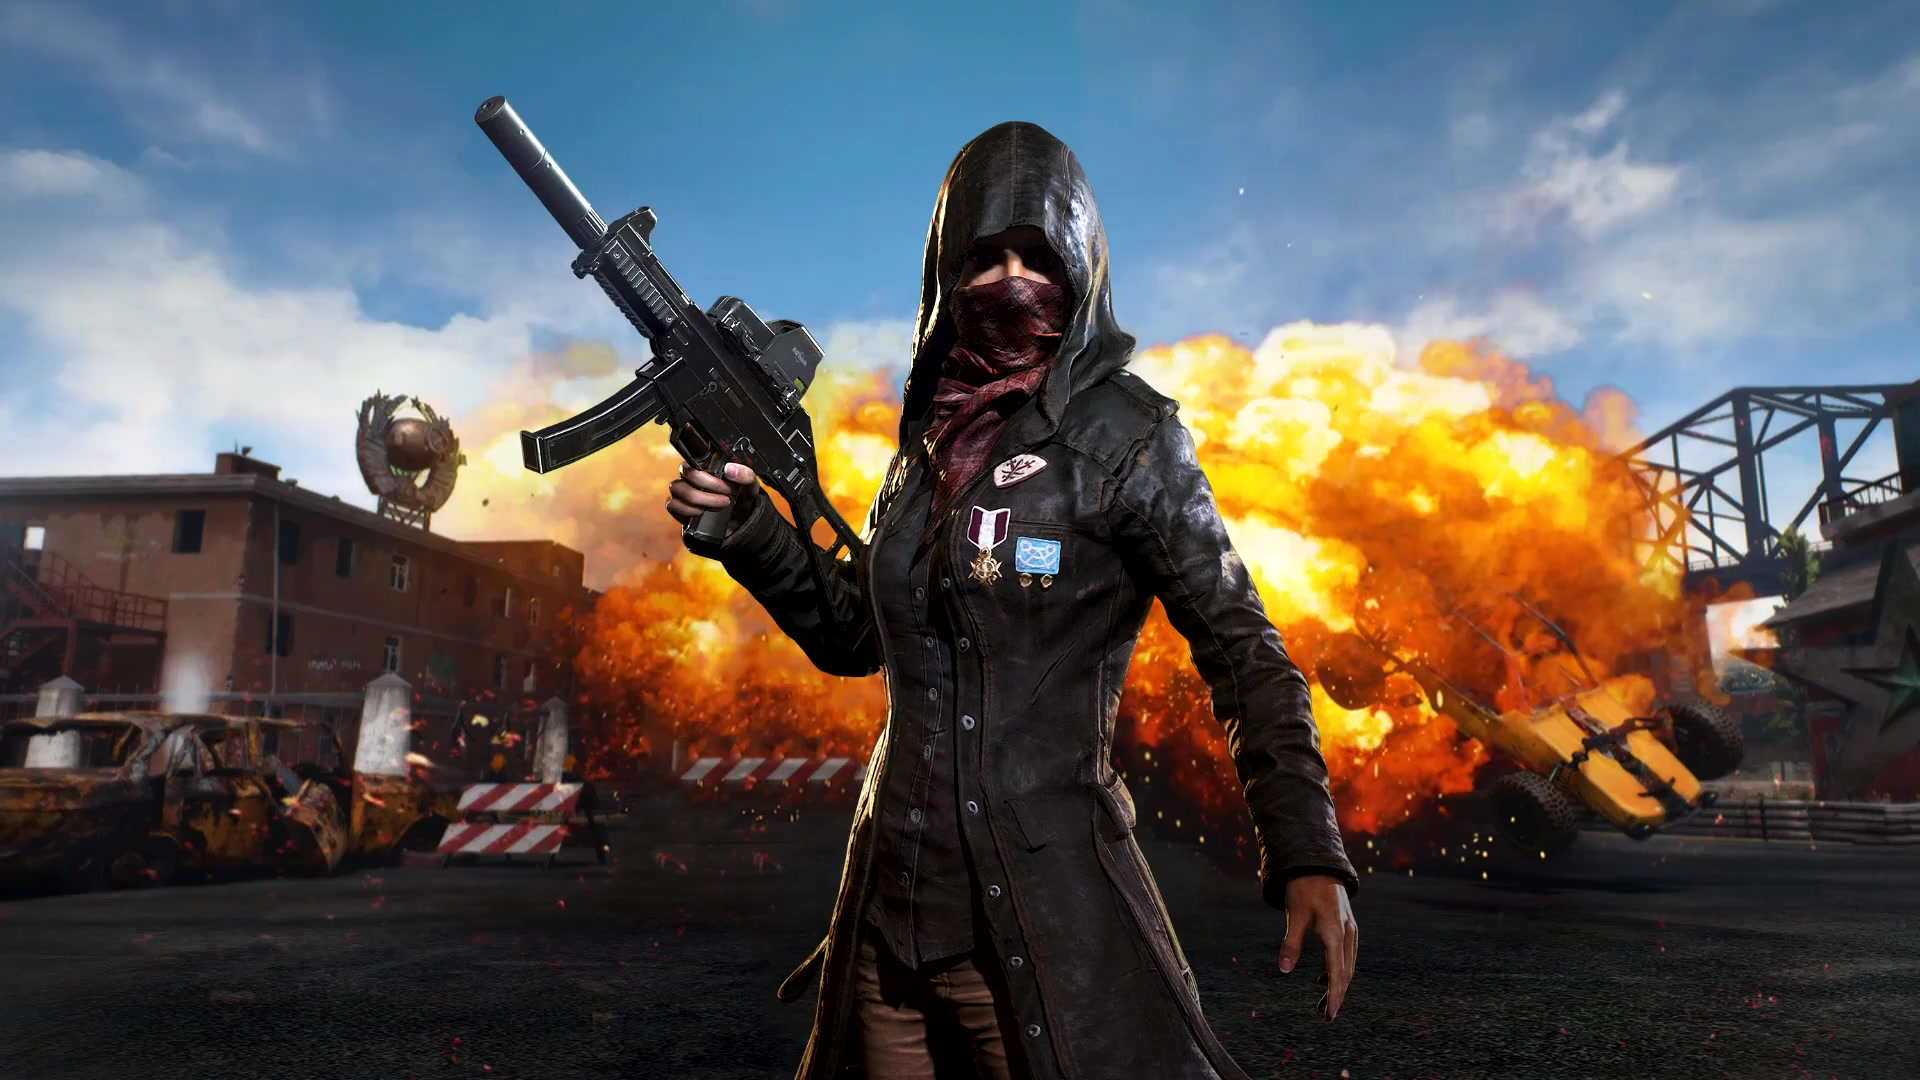 playerunknowns battlegrounds pubg hd wallpaper 64183